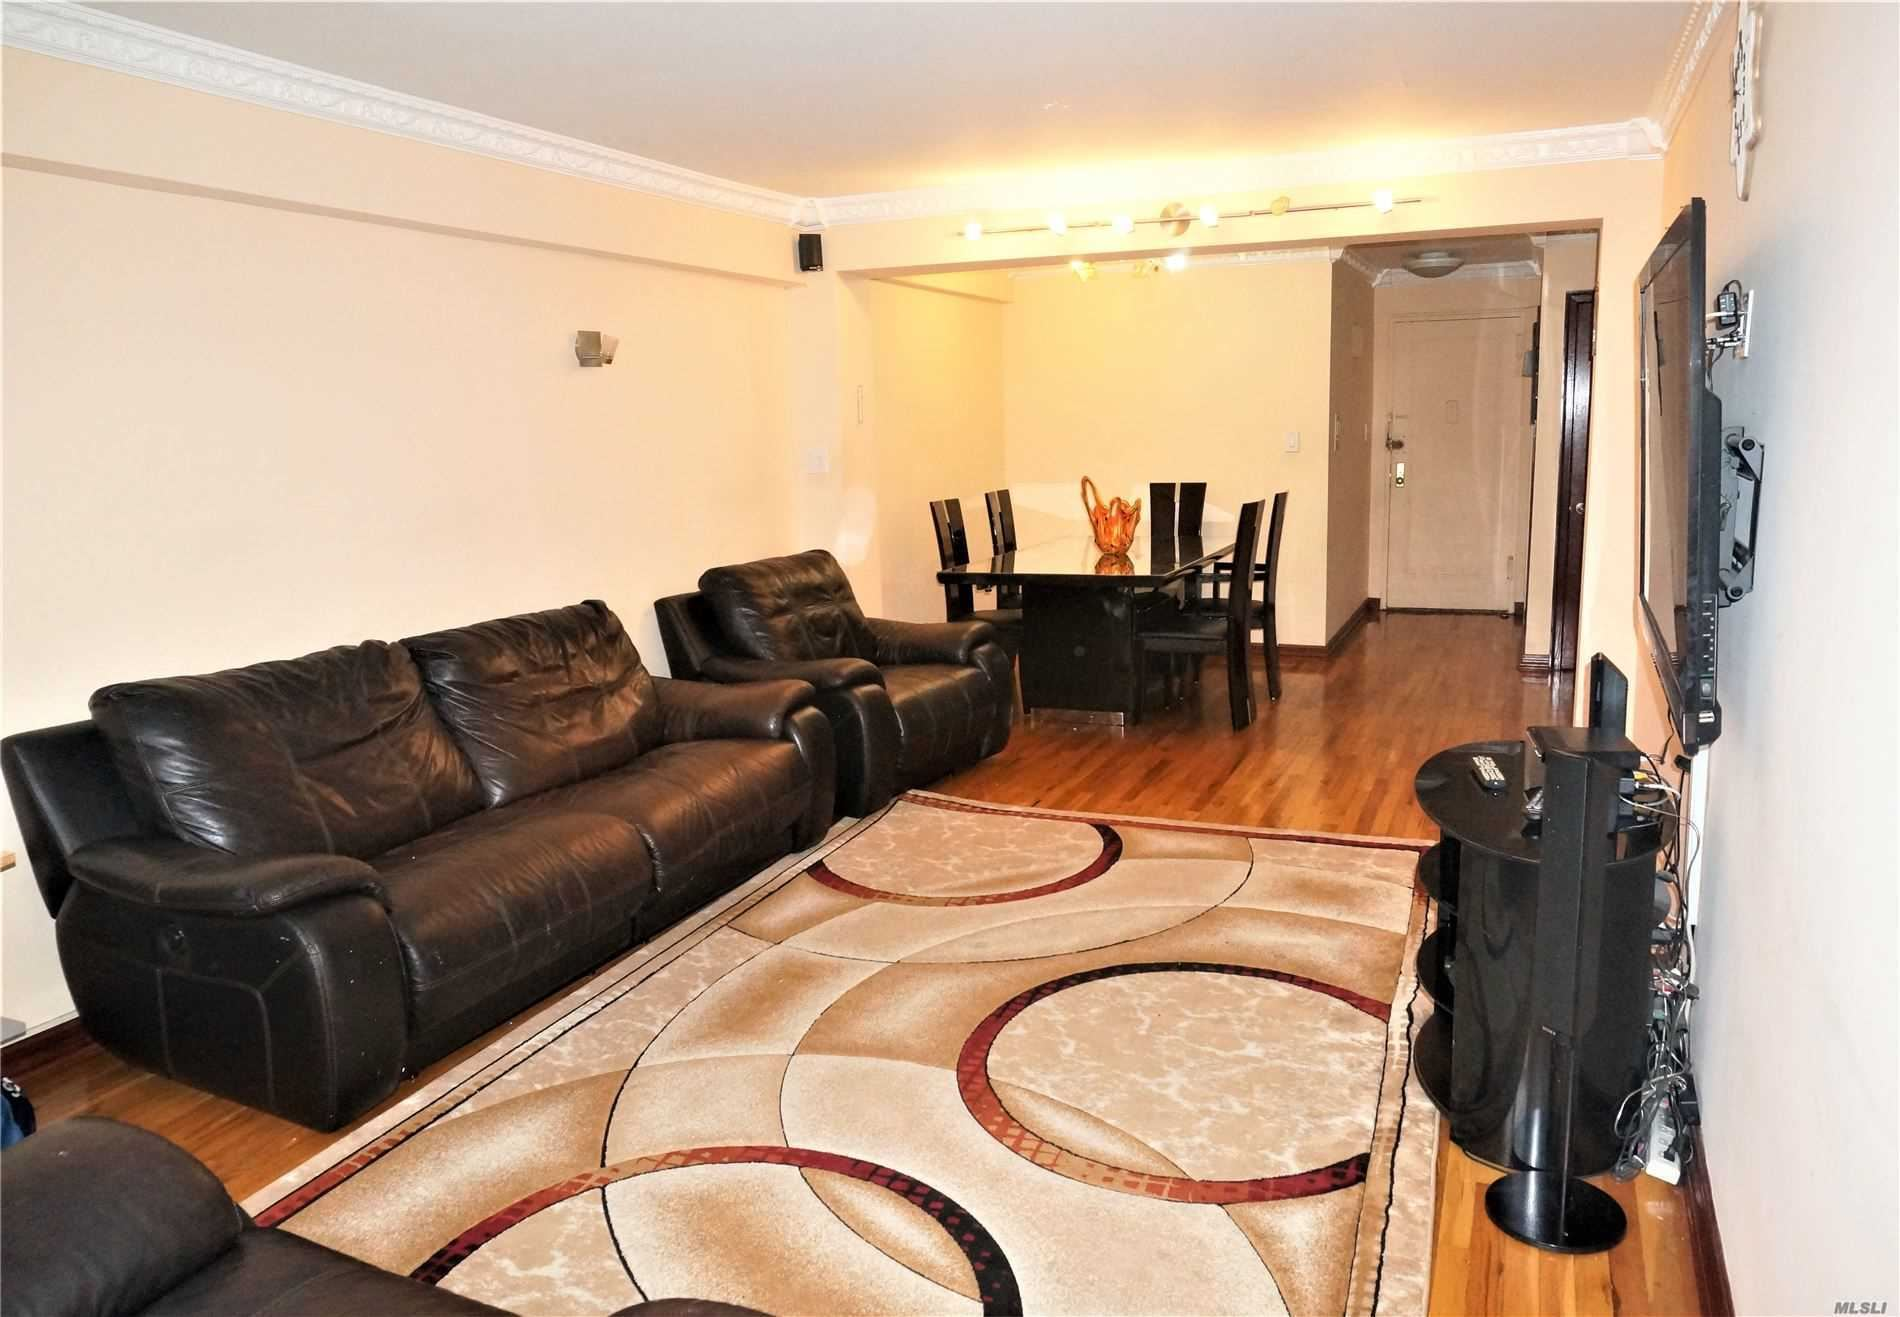 62-59 108th Street #4N, Forest Hills, NY 11375 - MLS#: 3184196